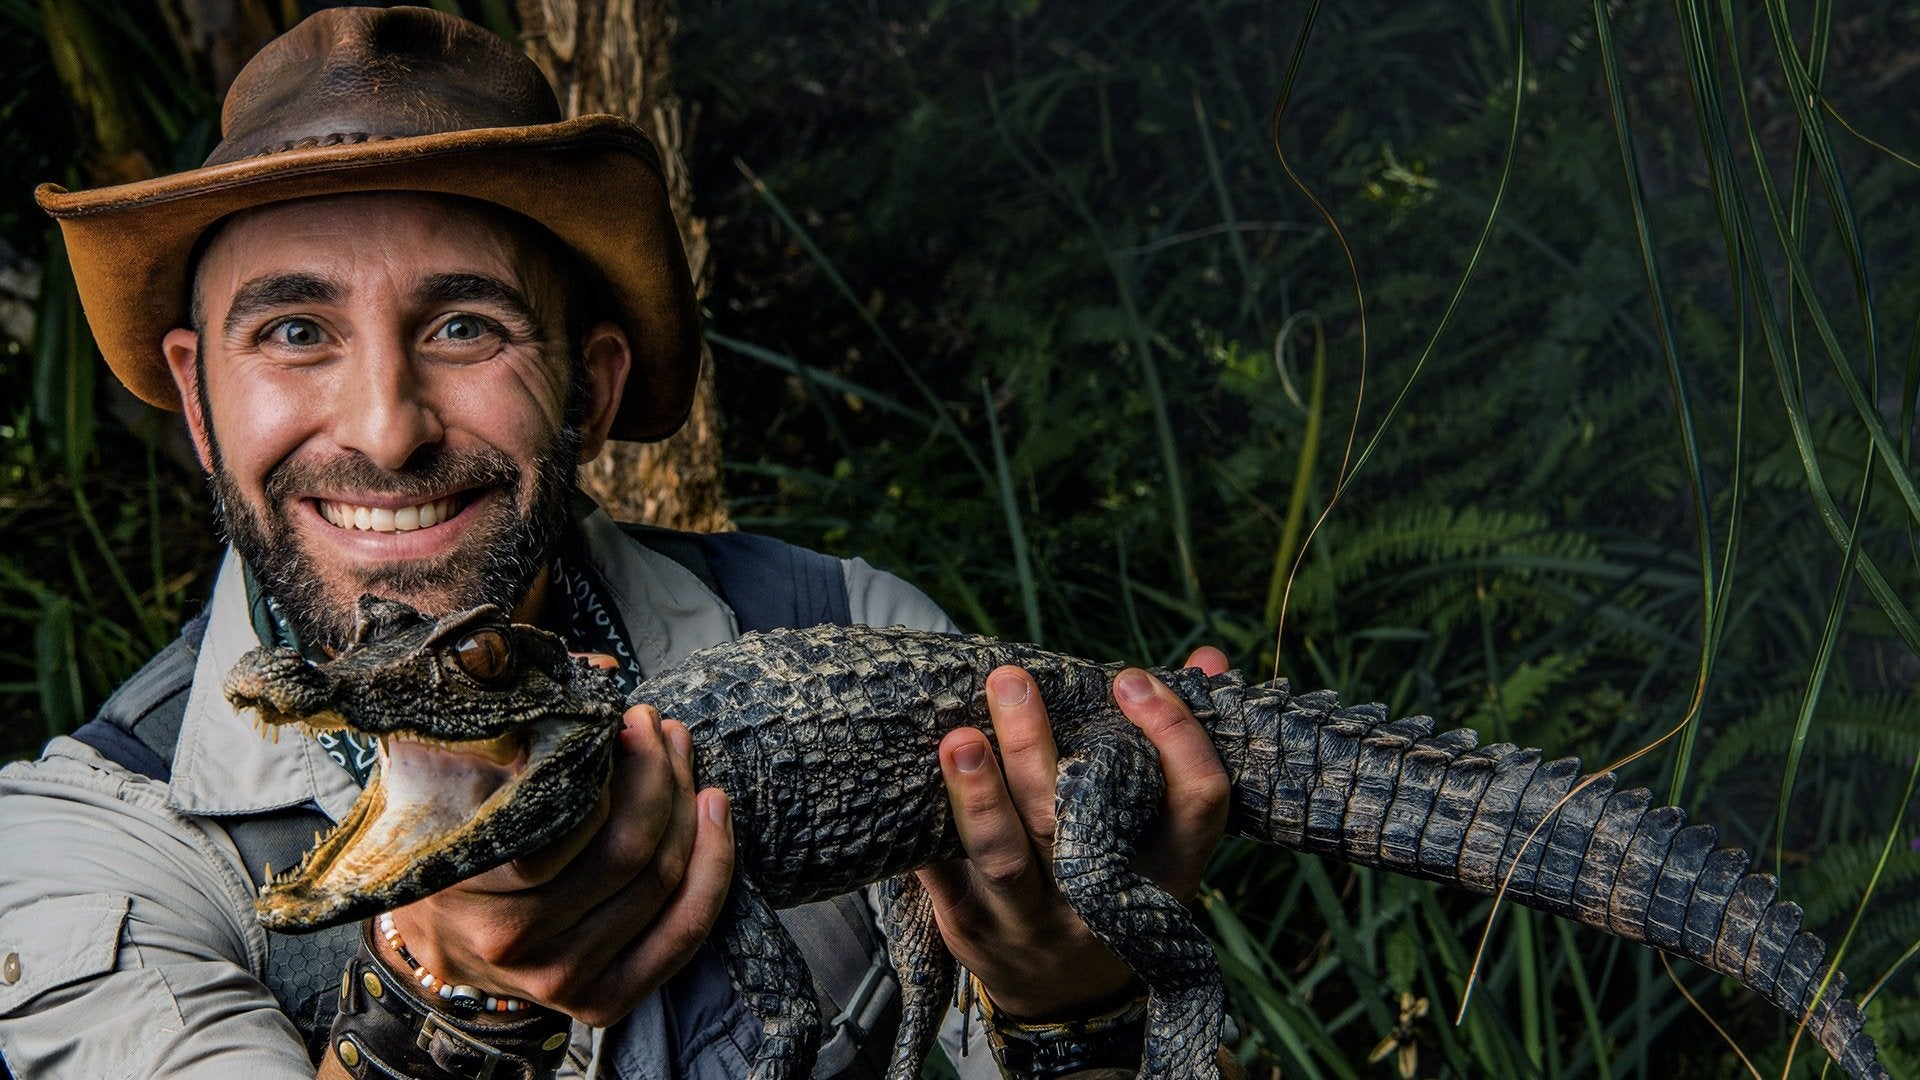 Coyote Peterson: Return to the Wilderness